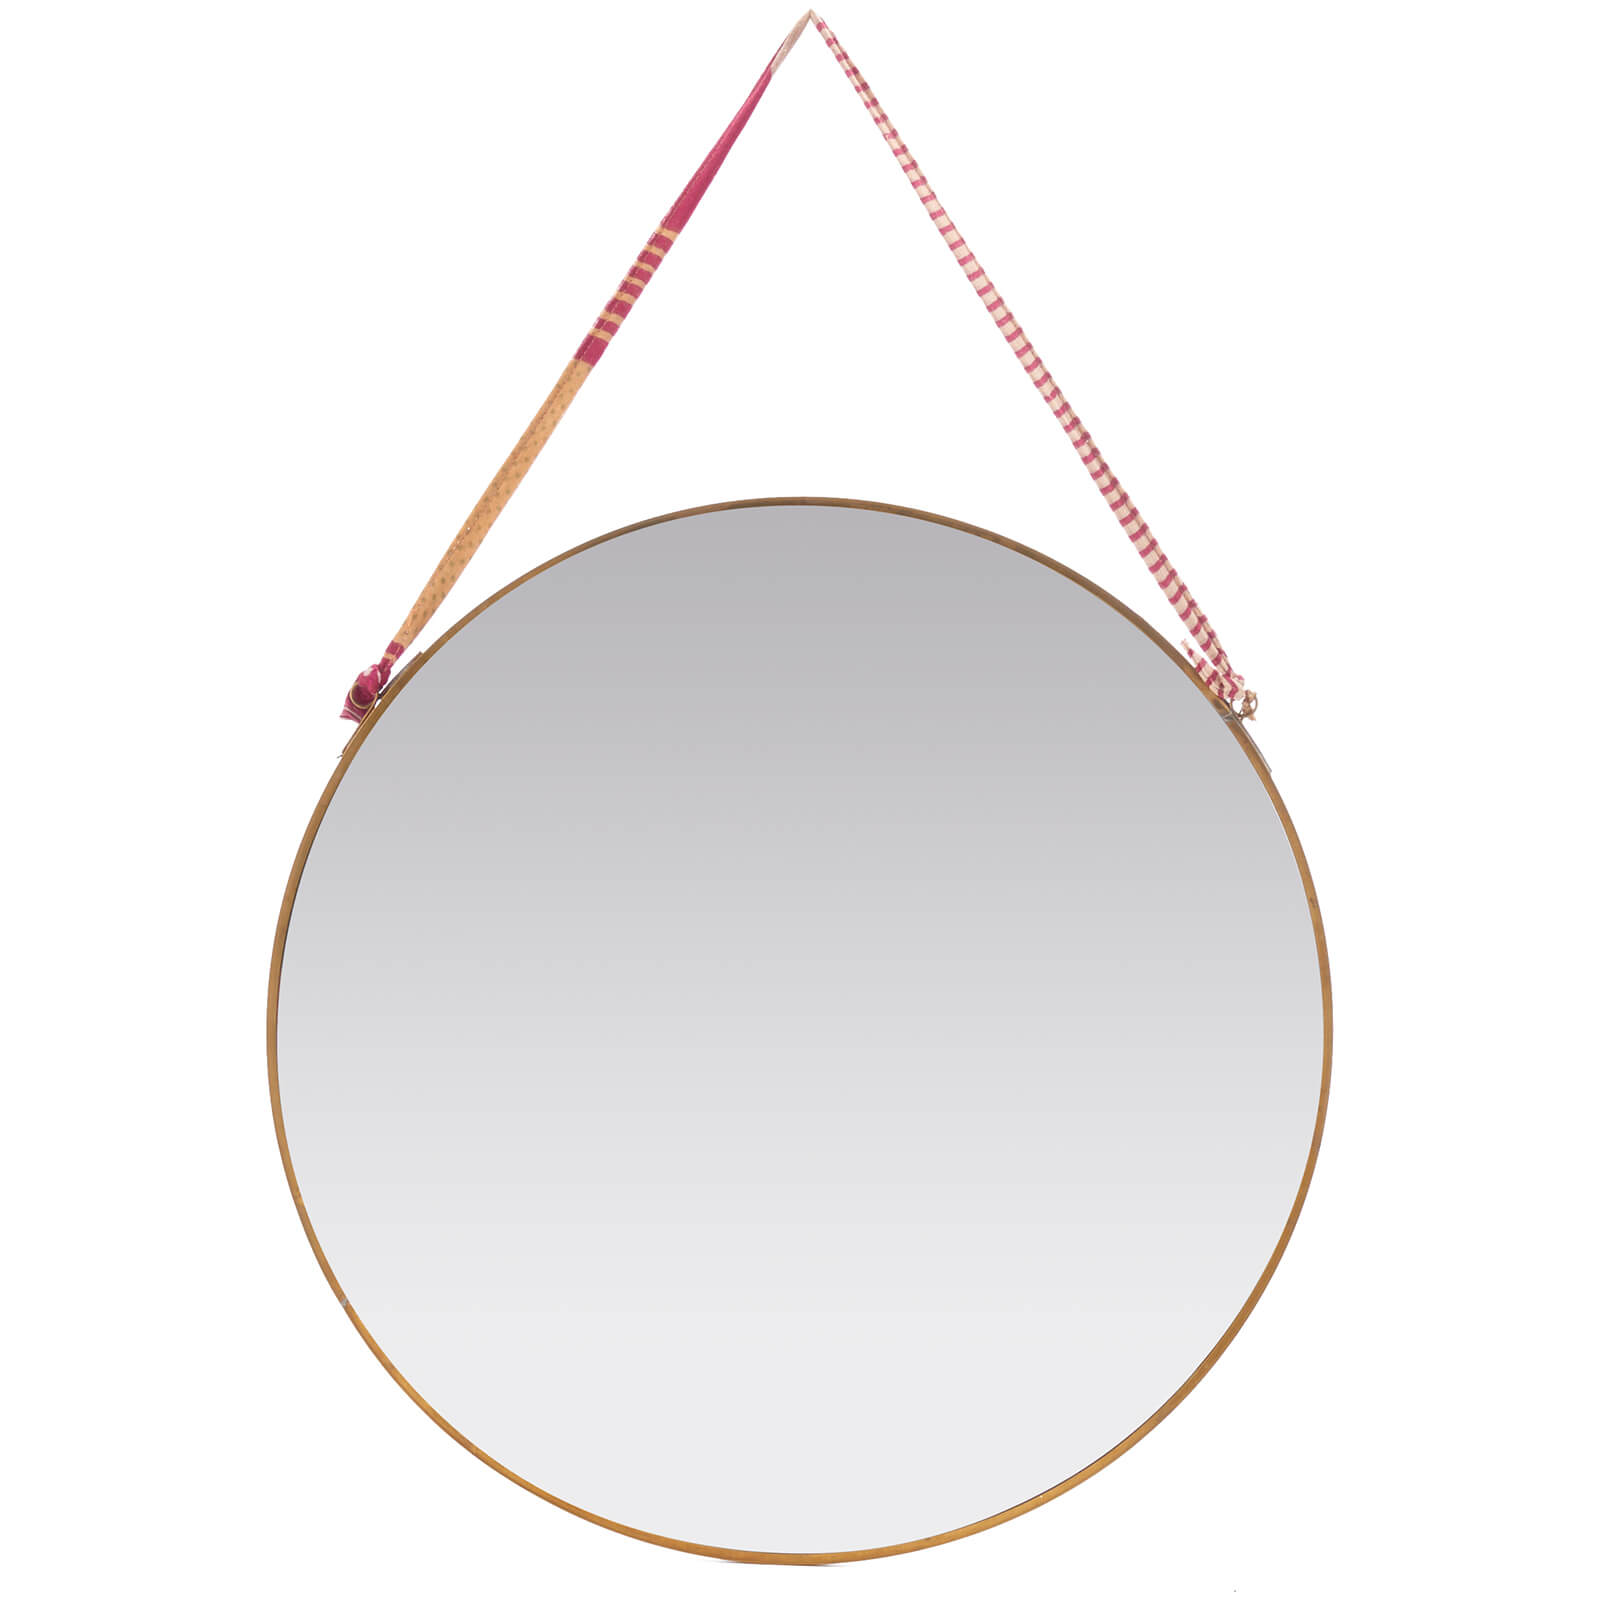 Nkuku Kiko Round Mirror - Antique Brass - Large